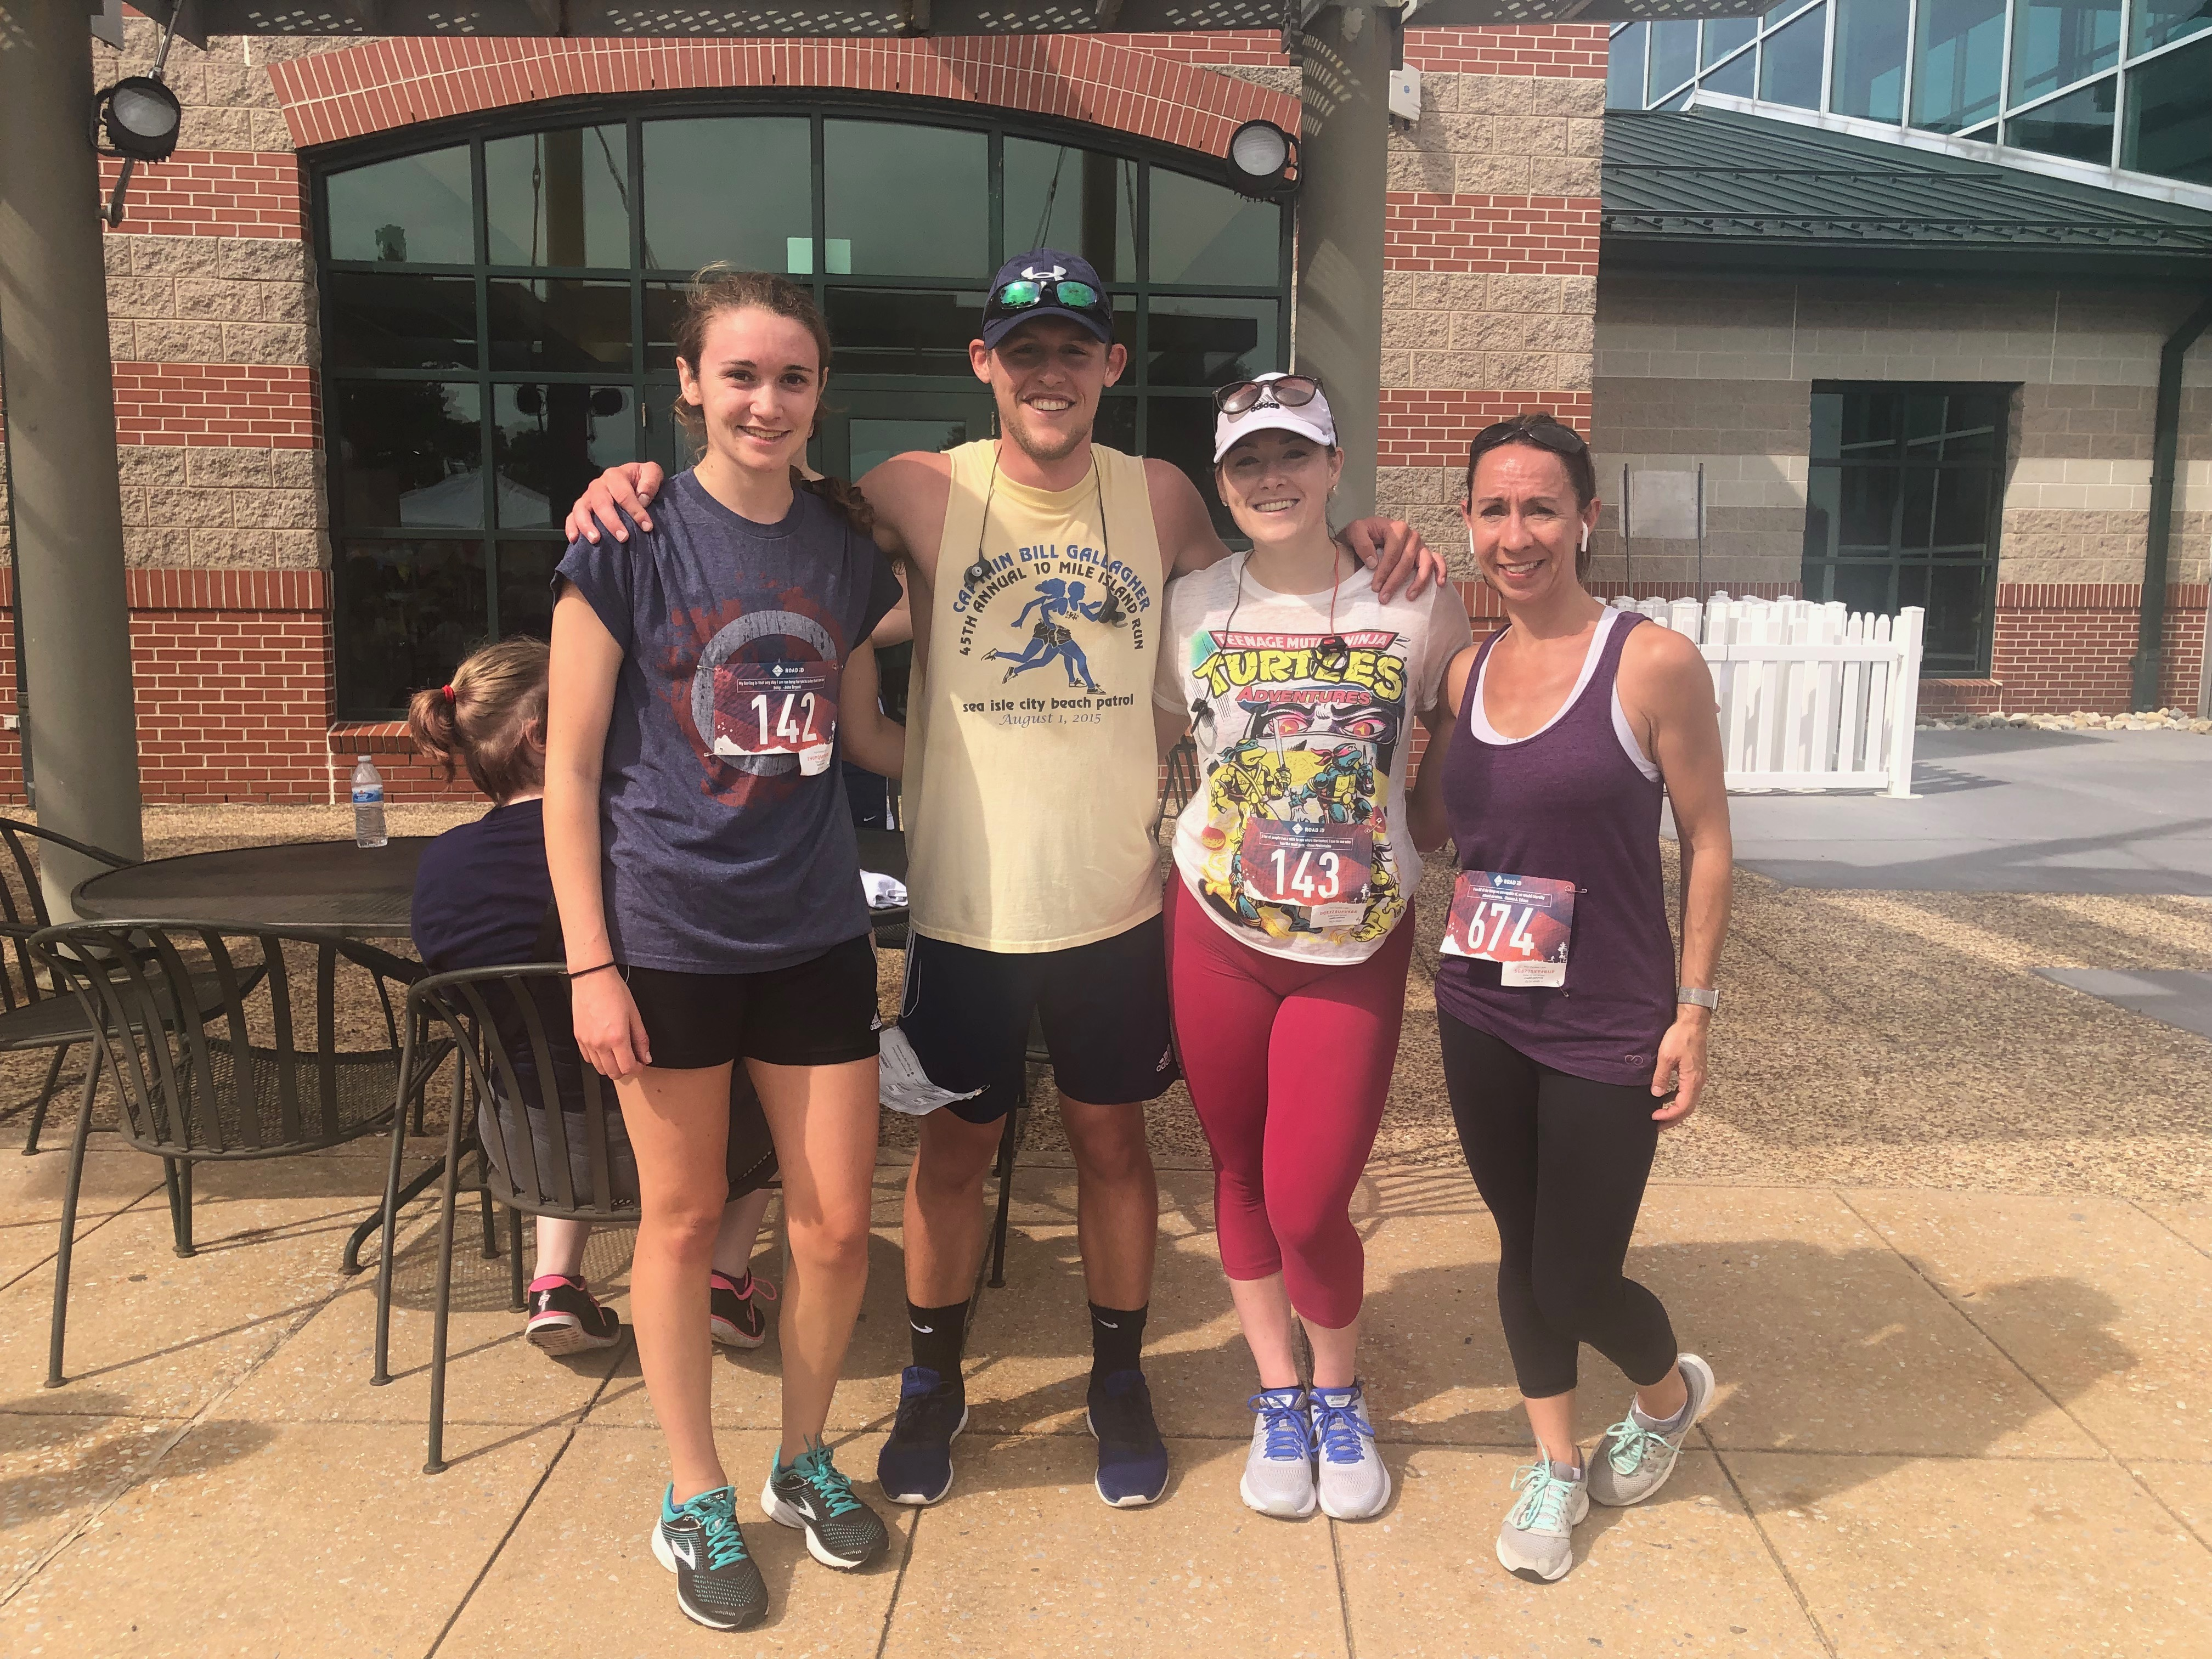 Bowman Participates in United Way 5K Run